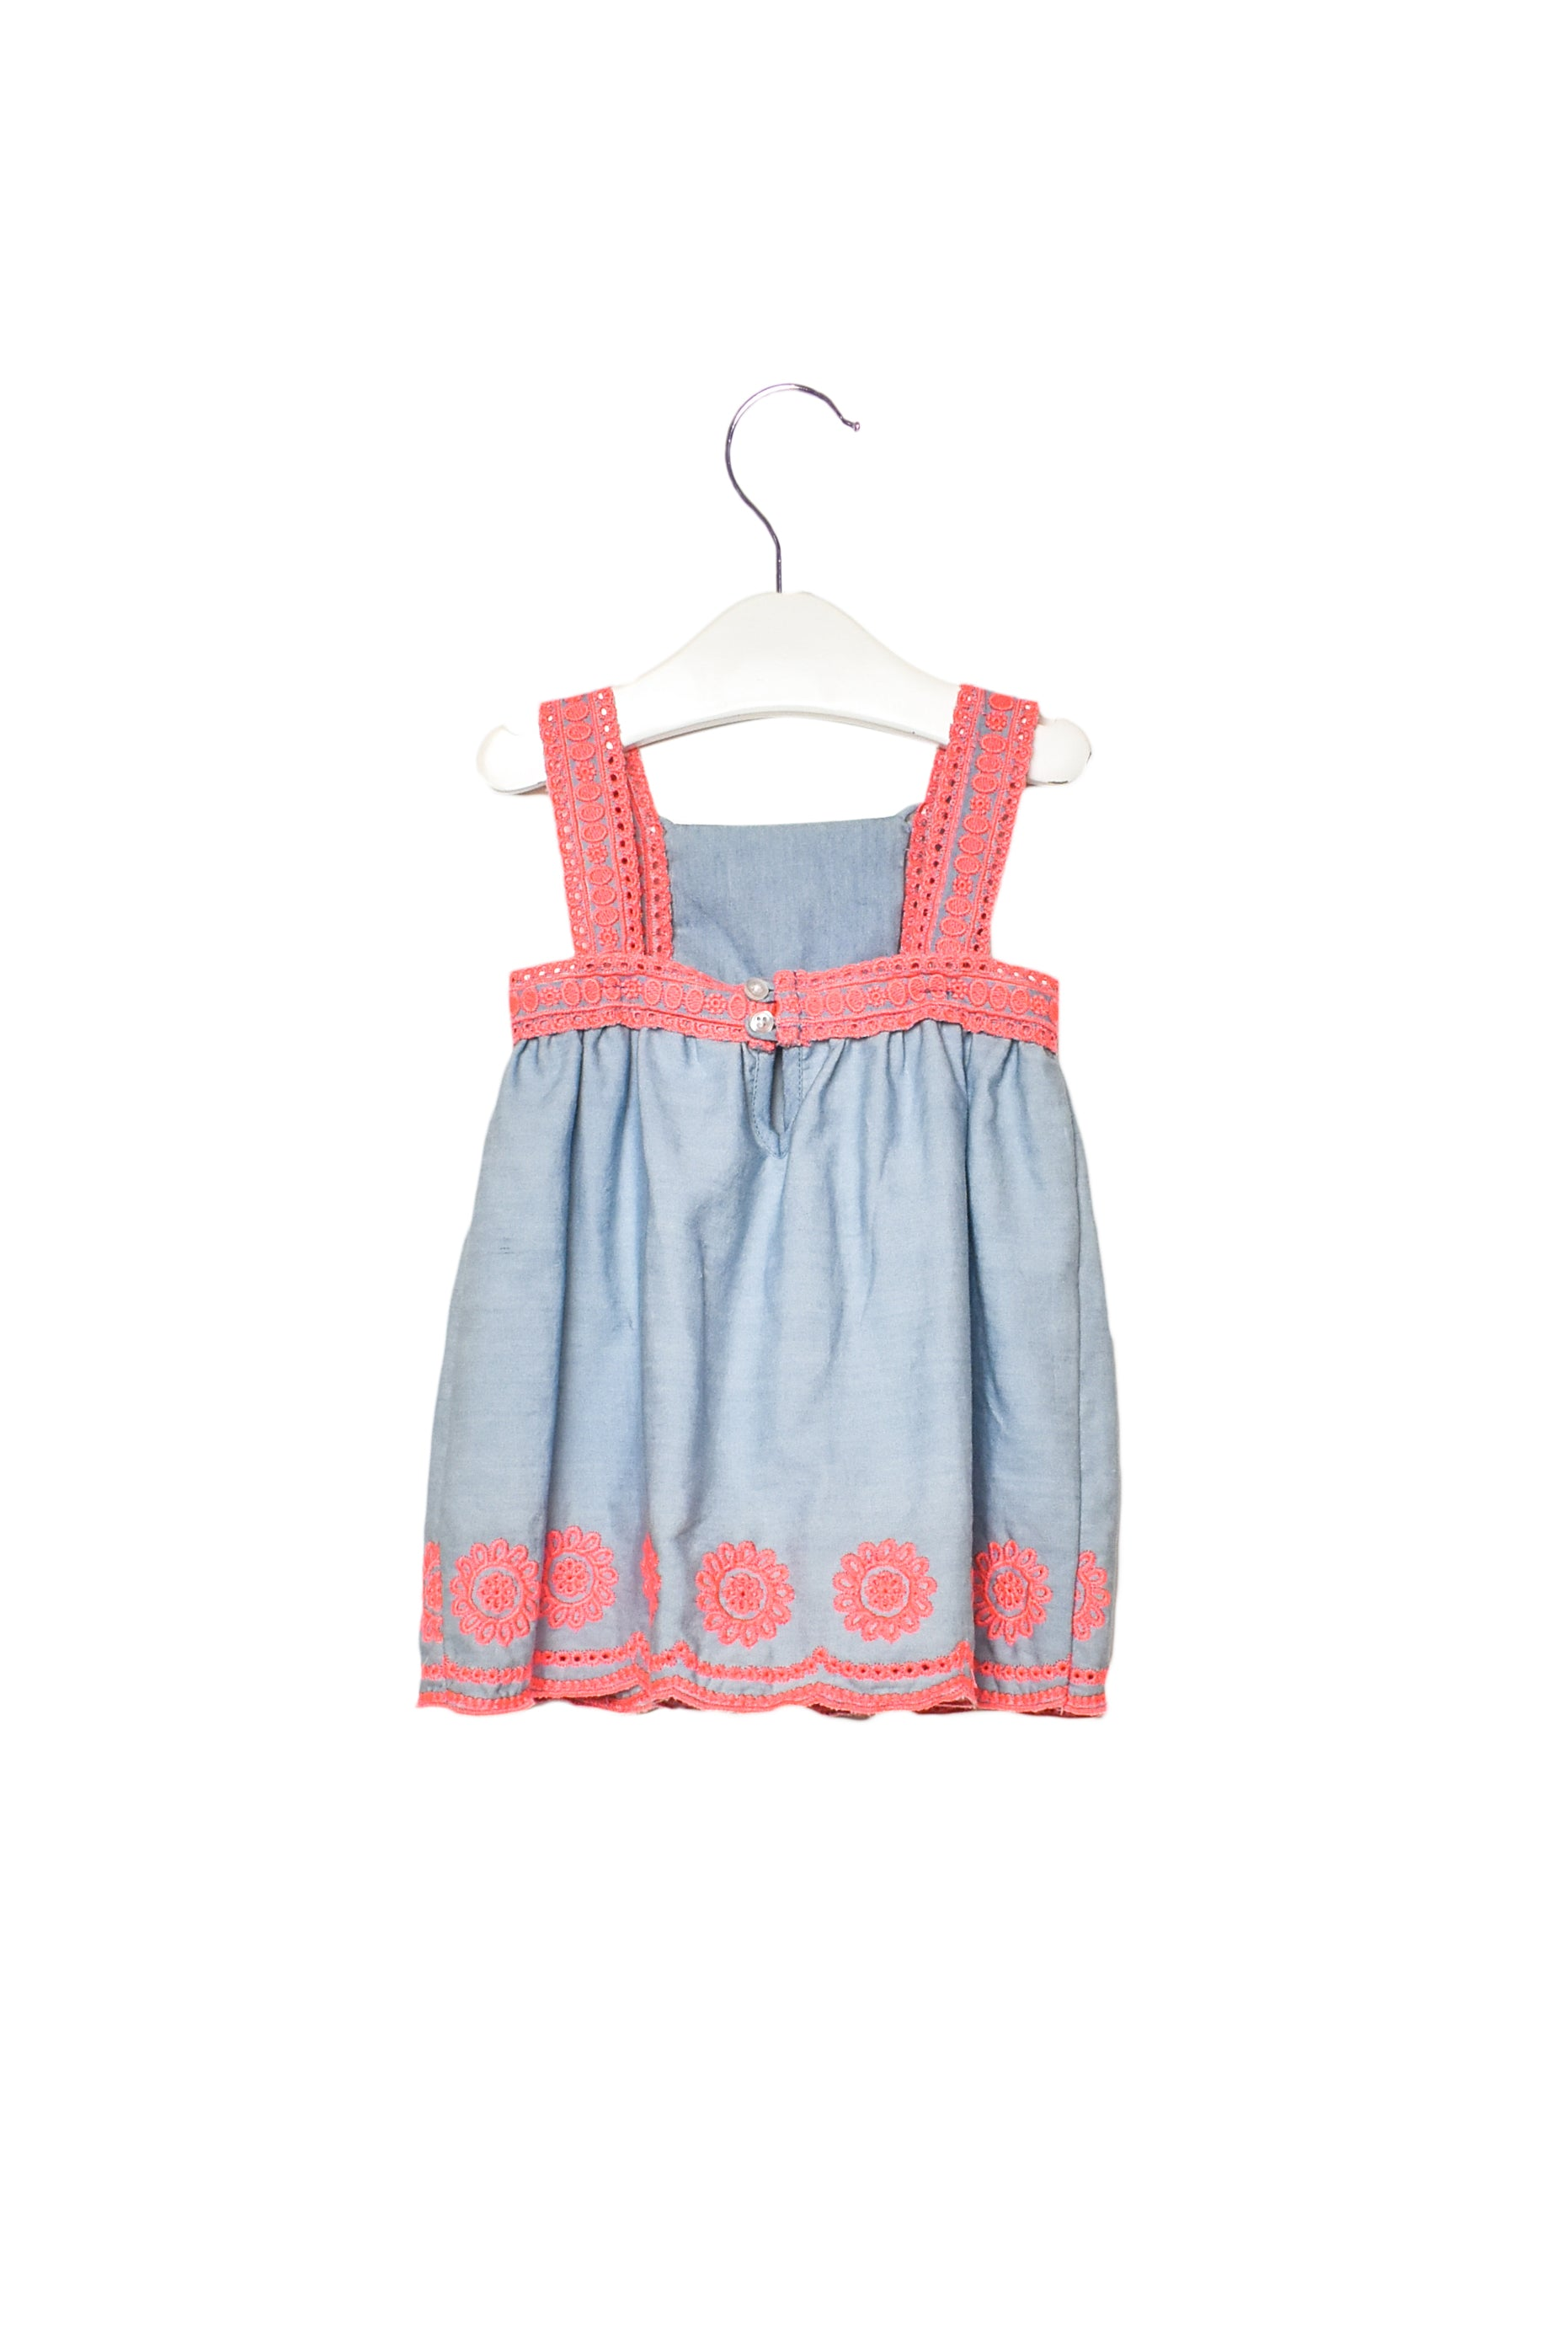 10012130 Seed Baby ~ Dress 0-3M at Retykle